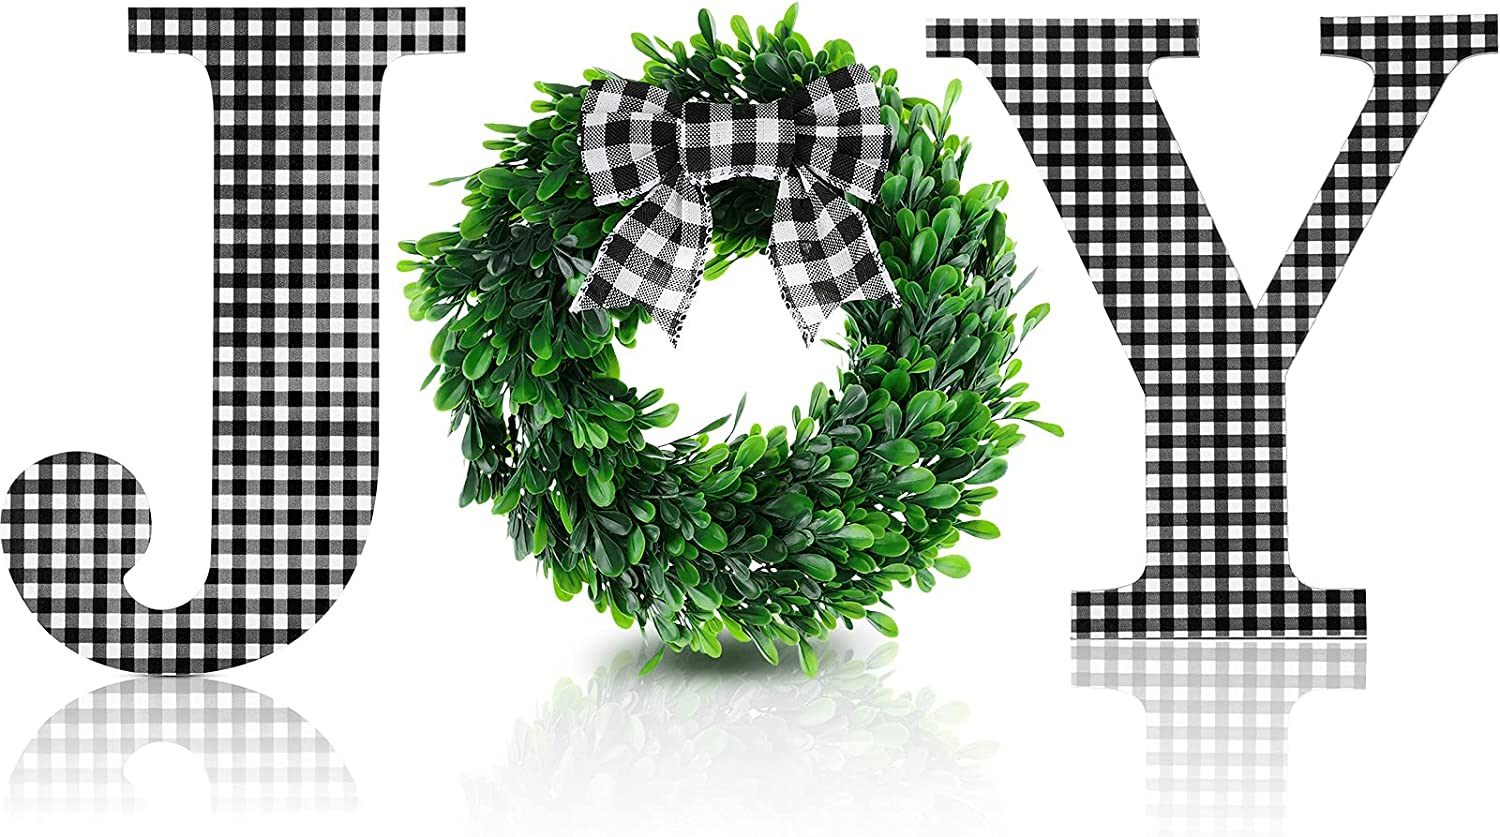 12 Inch Christmas Joy Home Sign Wooden Joy Letter Wall Decor Buffalo Plaid Wall Hanging Letter Faux Green Farmhouse Wreath Large Joy Sign with Plaid Bow for Indoor Outdoor Home Decor (Black-White)